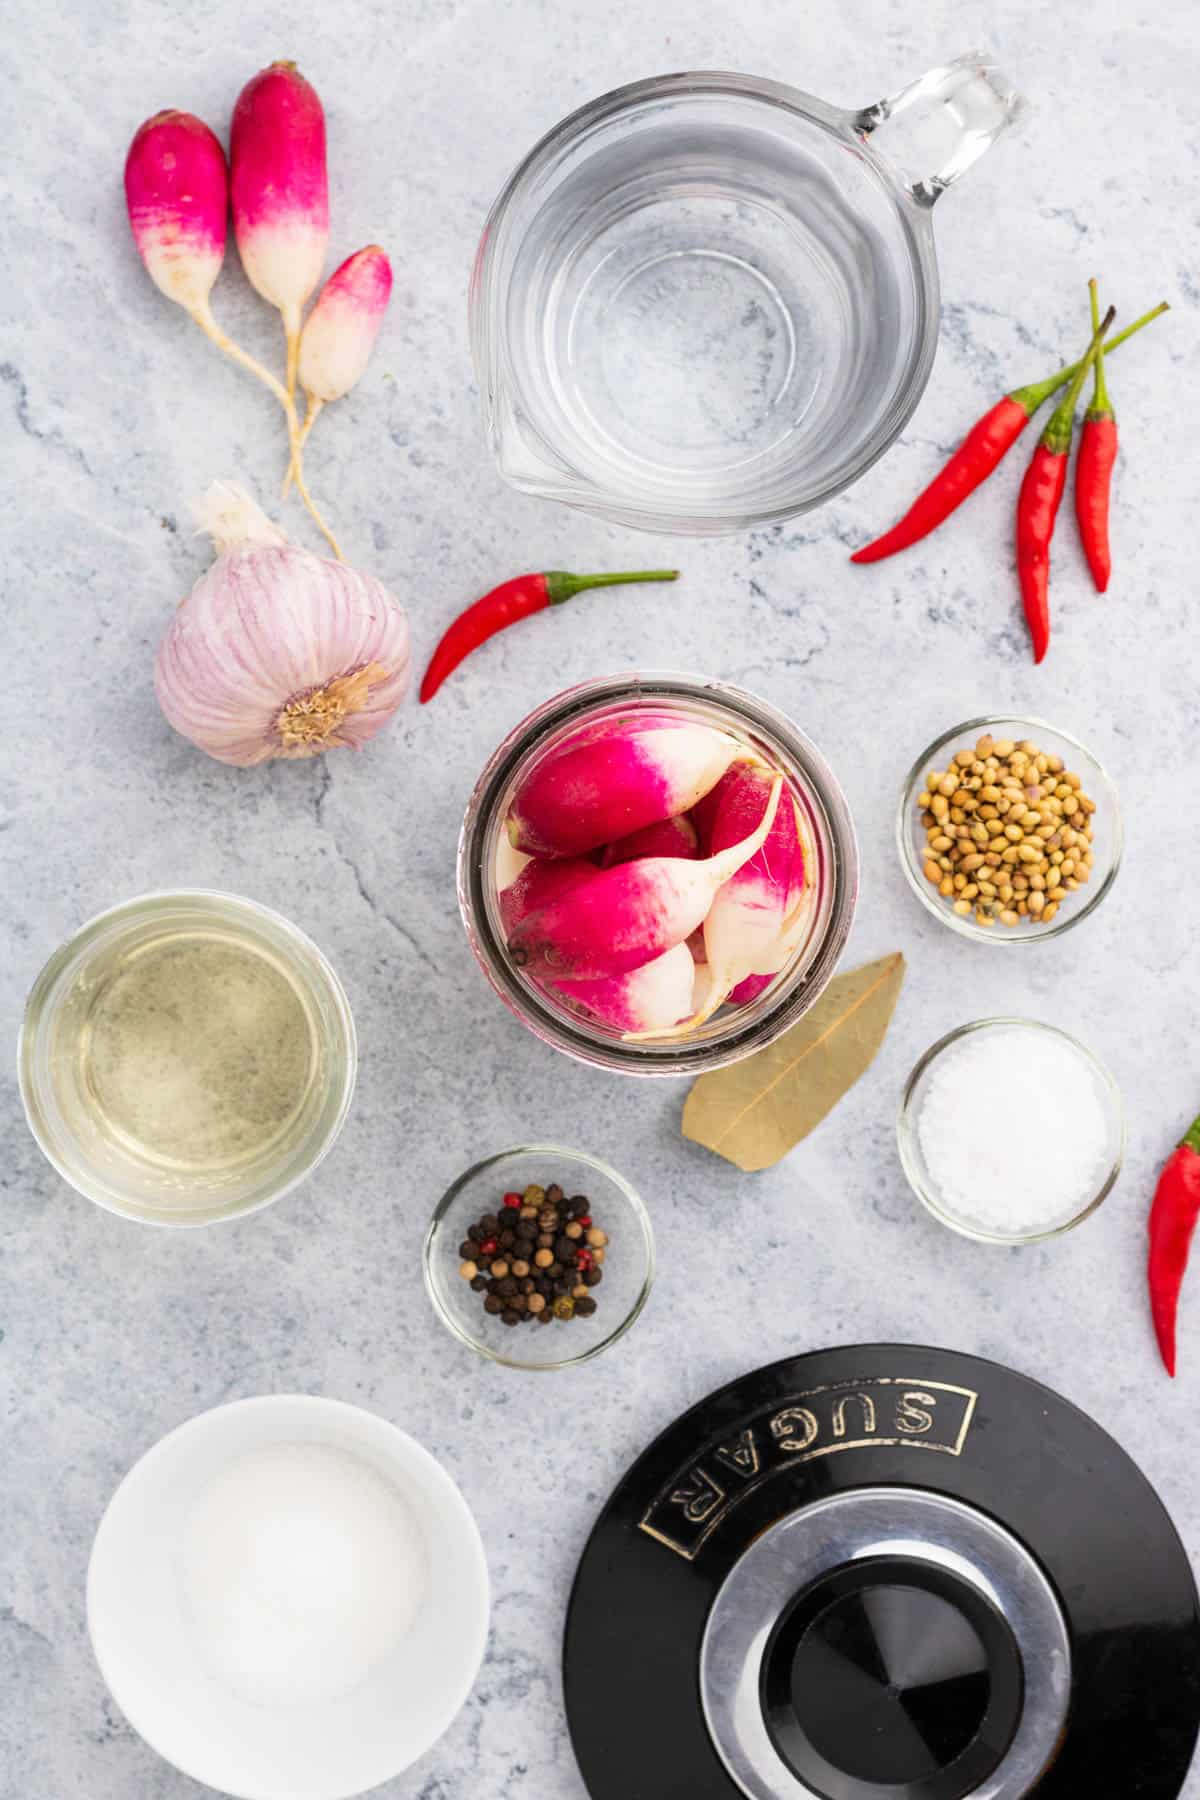 Ingredients used in making quick pickled radishes.